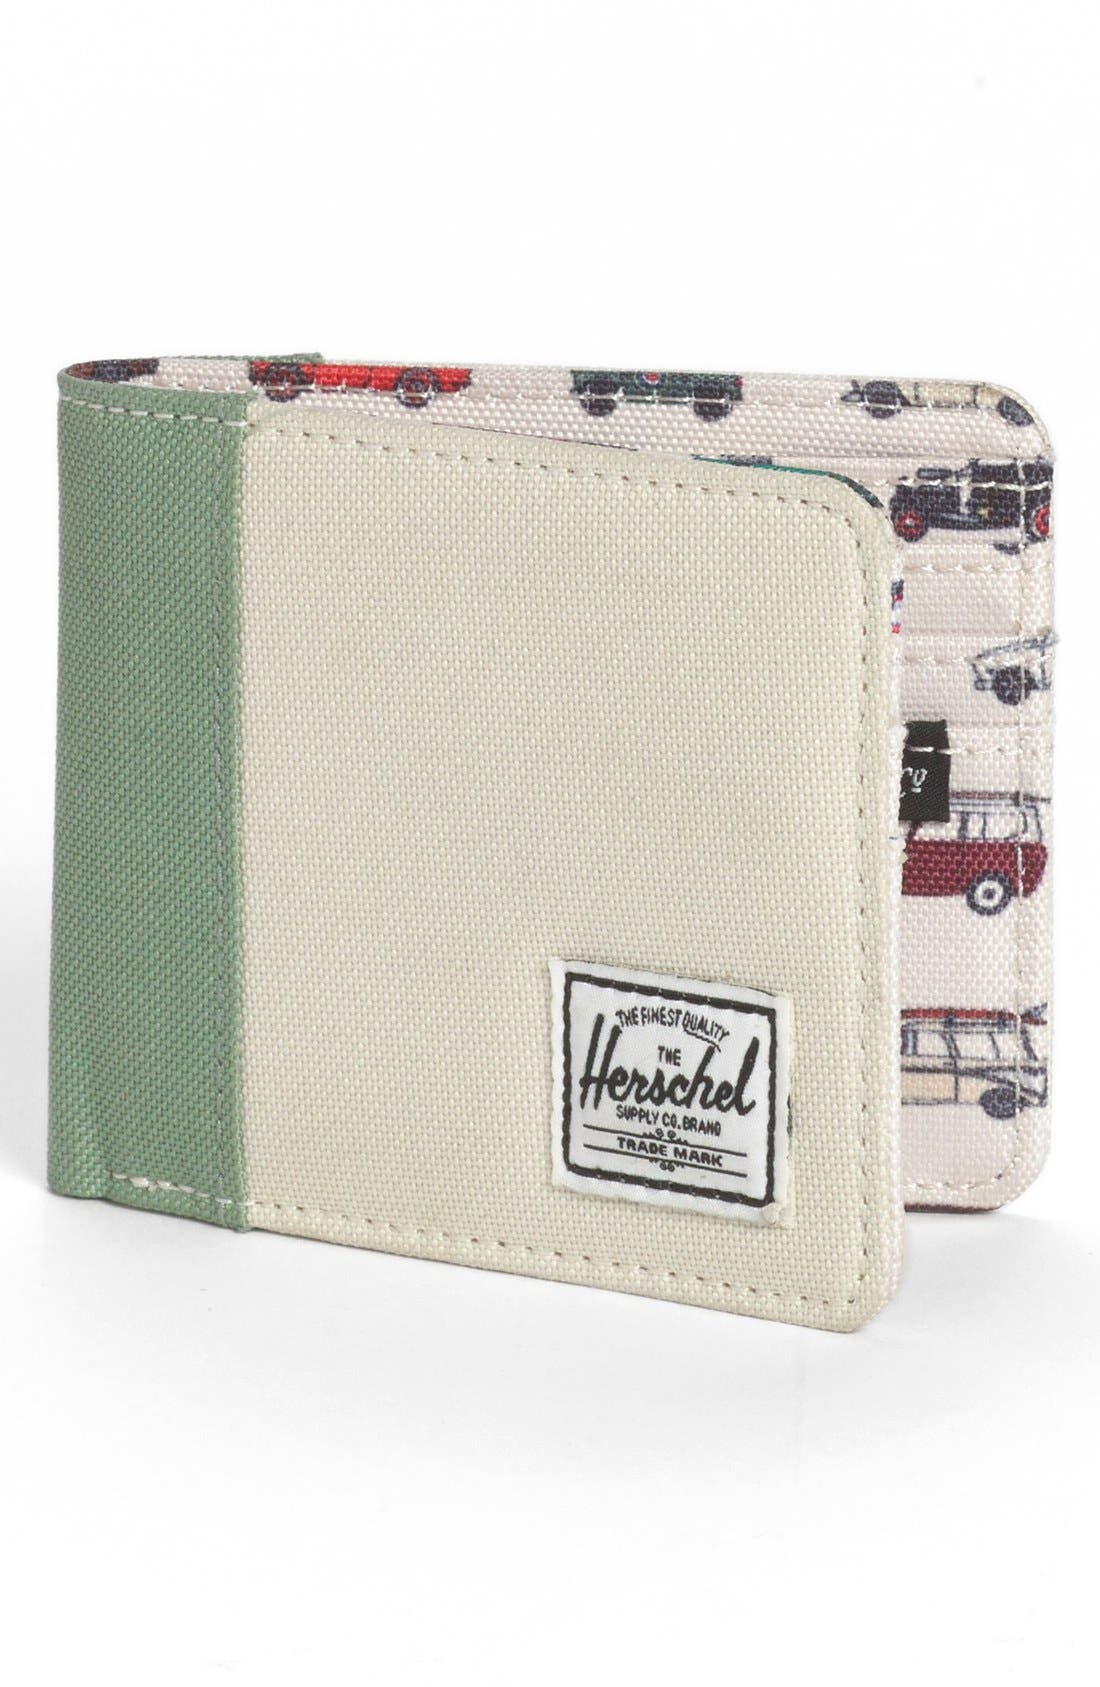 Alternate Image 1 Selected - Herschel Supply Co. 'Edward - Rad Cars with Rad Surfboards Collection' Wallet